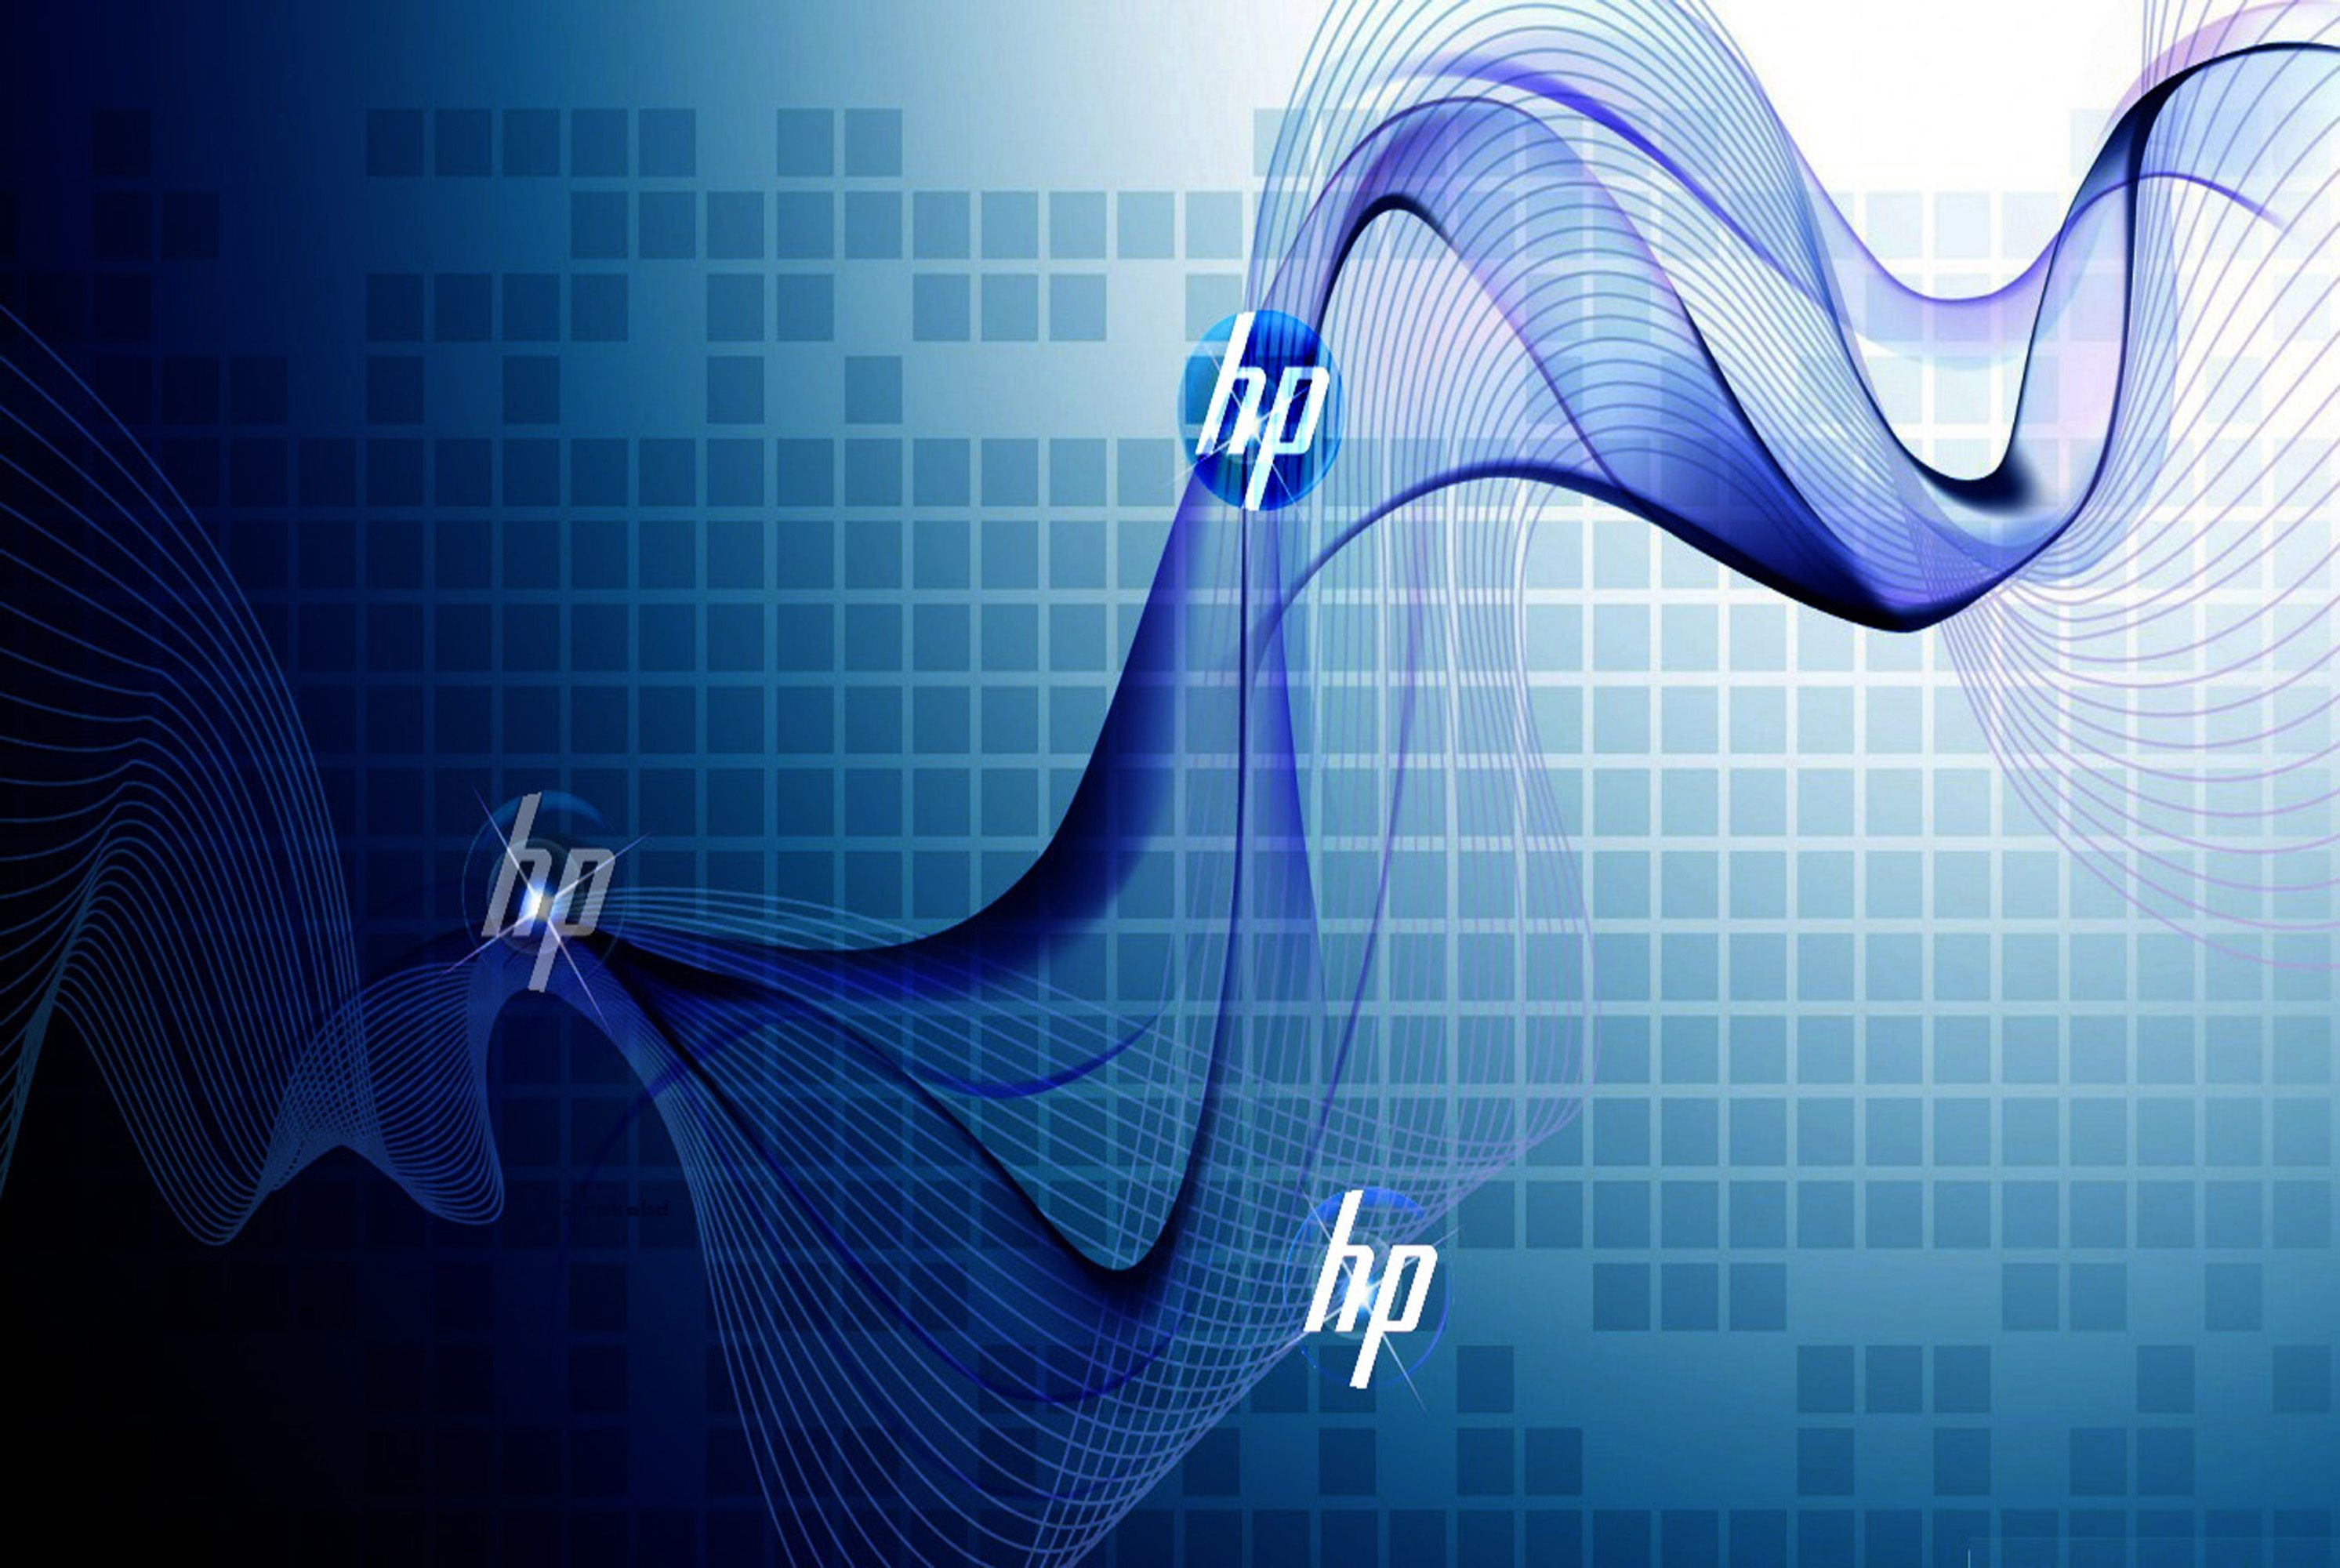 hp hd wallpapers 1080p